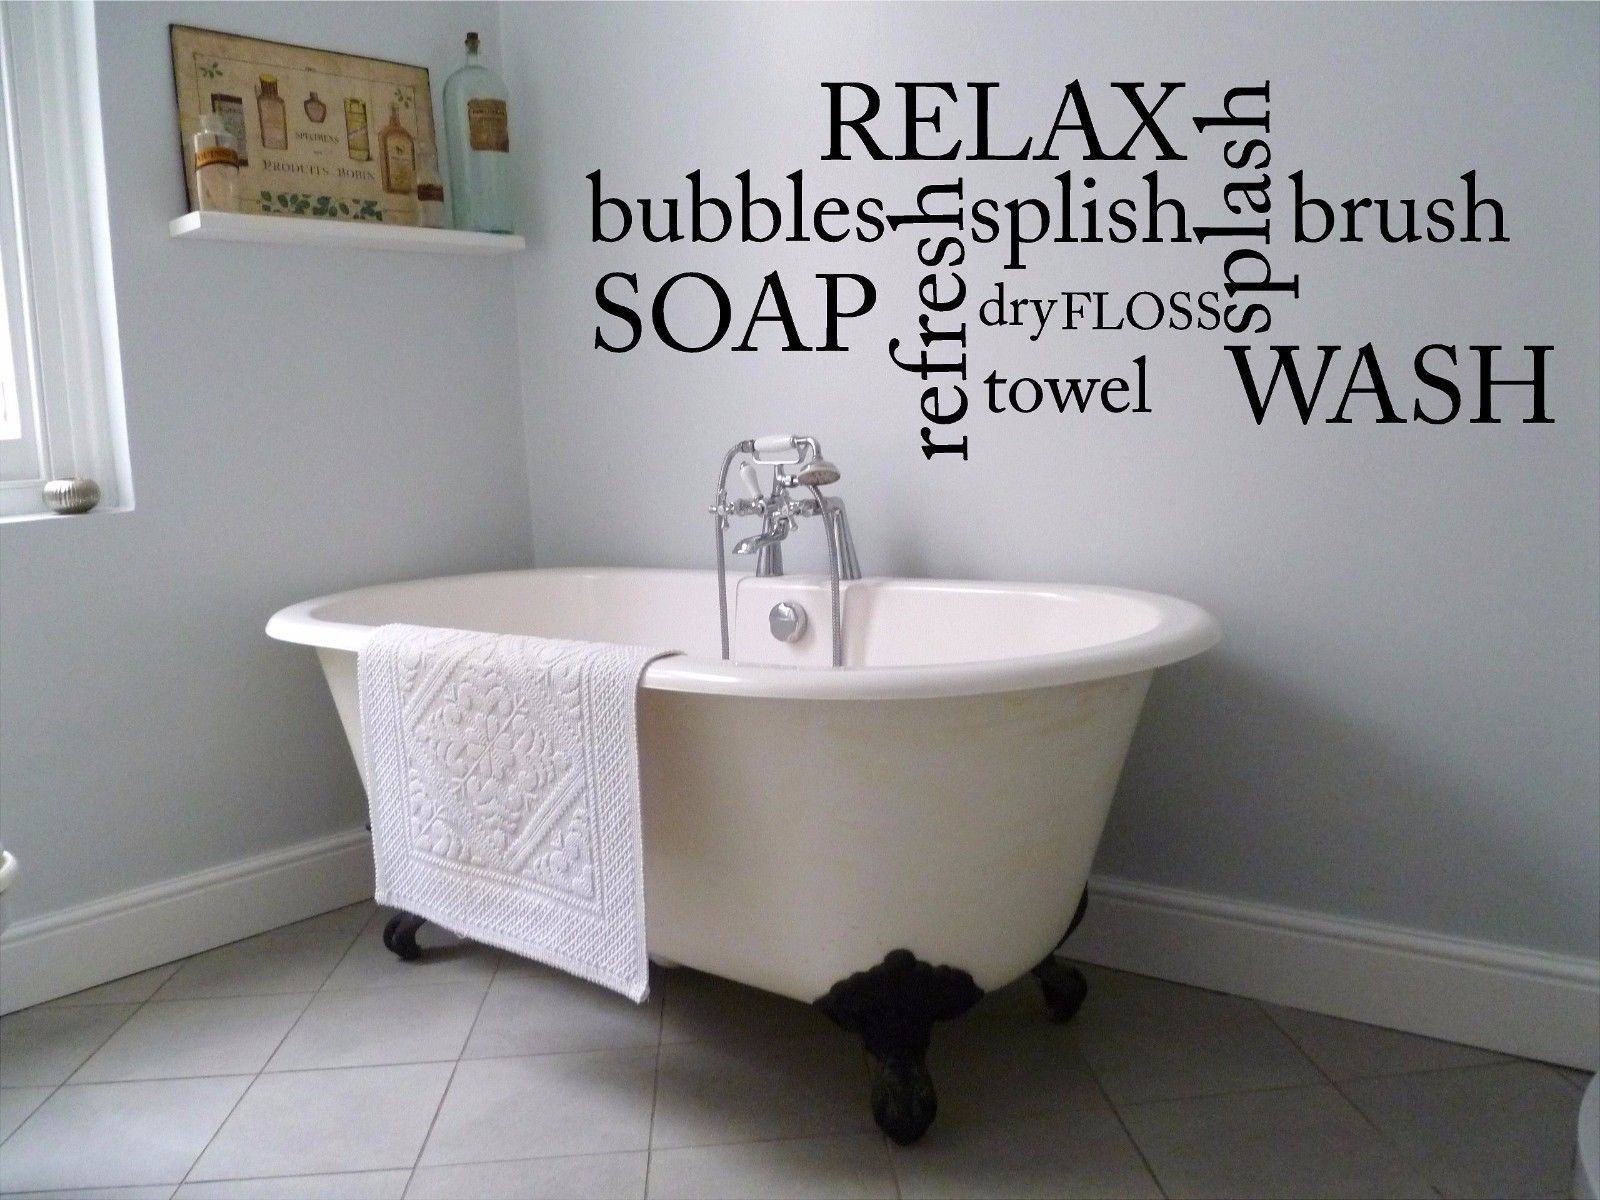 Bubbles Soap Relax Wash Bathroom Wall Decal Cute Funny Room Bath Vinyl Sticker